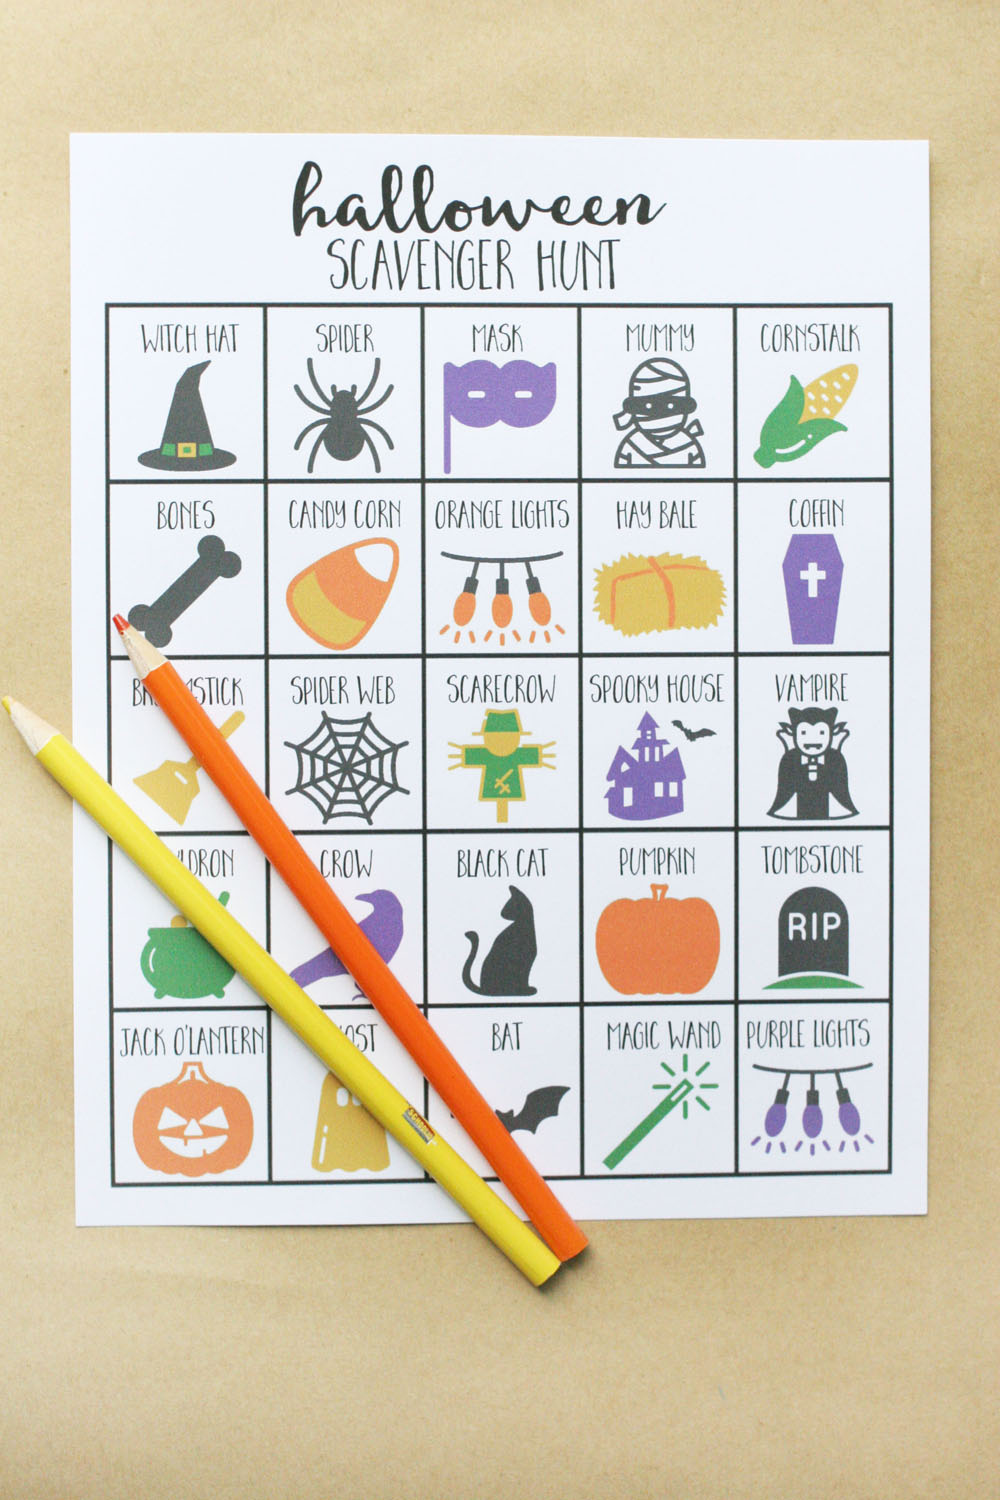 How to Play a Fun Halloween Scavenger Hunt Game ...